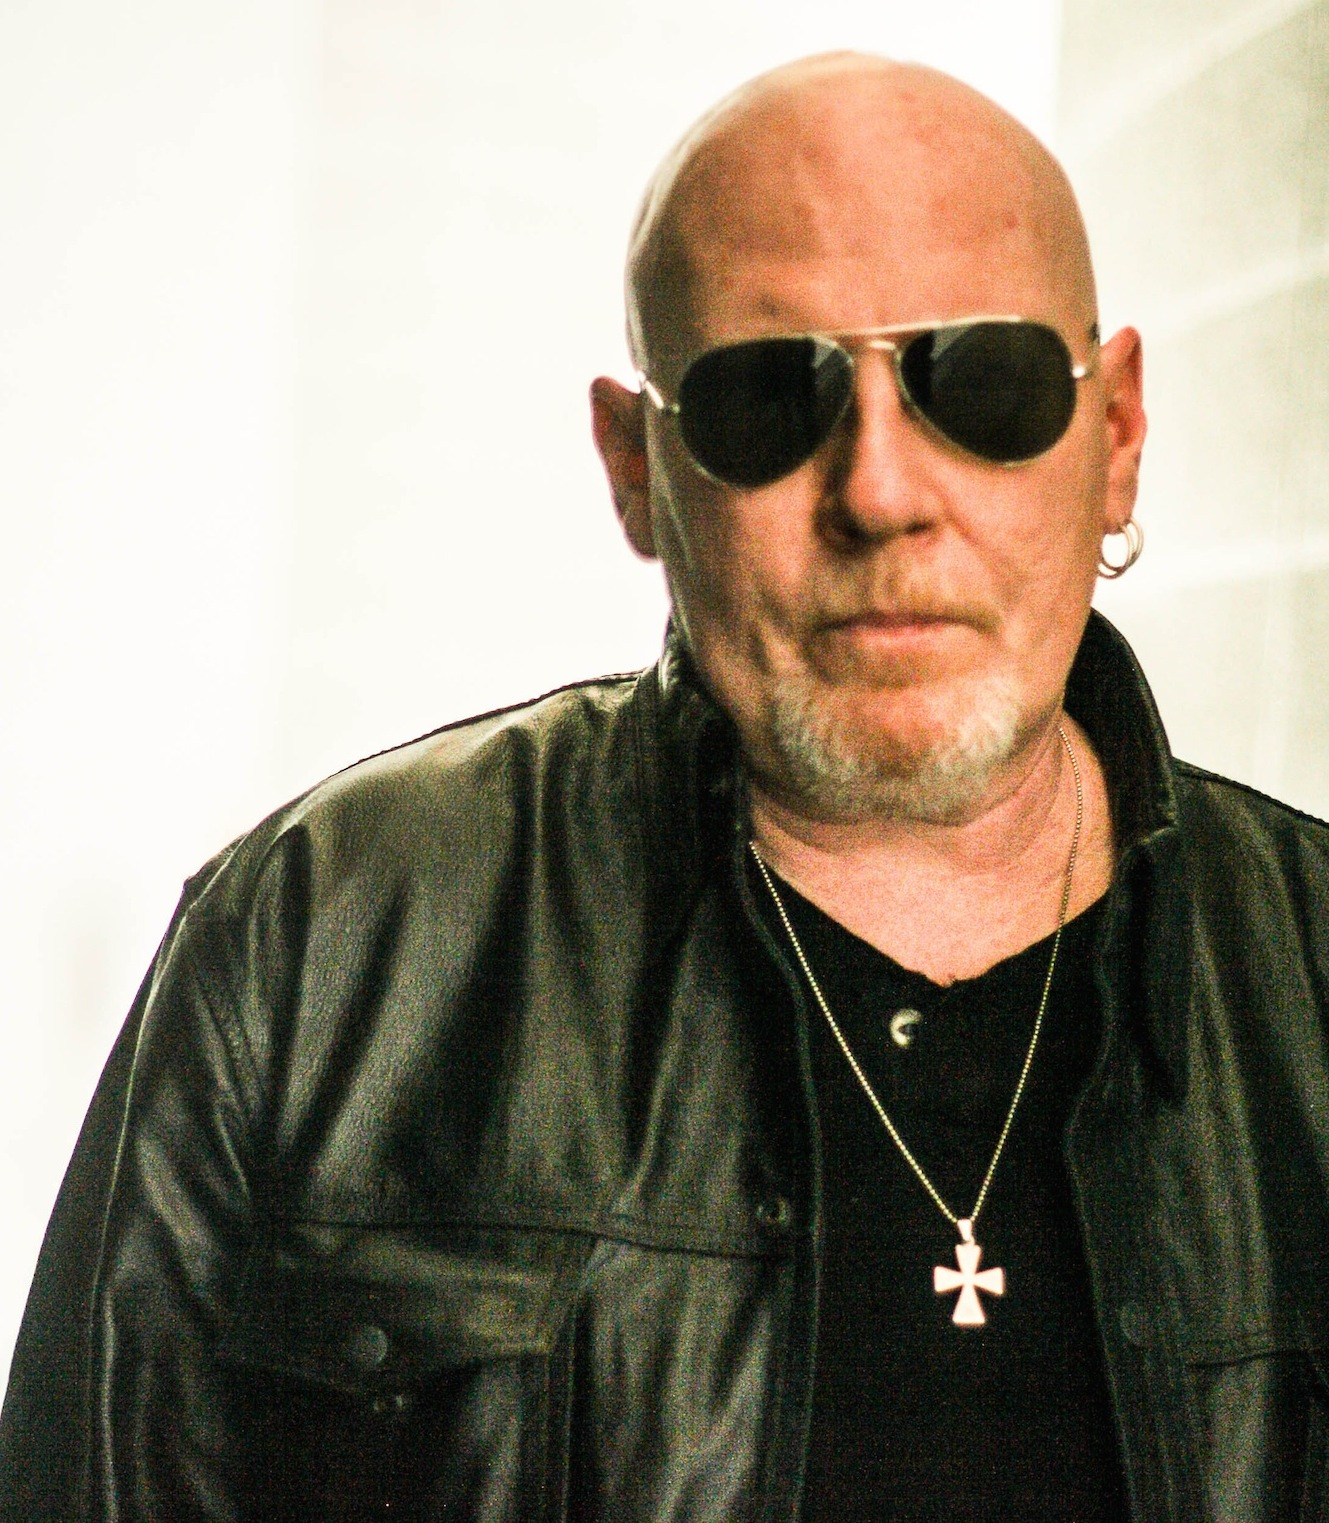 Punk-rock veteran Cheetah Chrome is still full of surprises